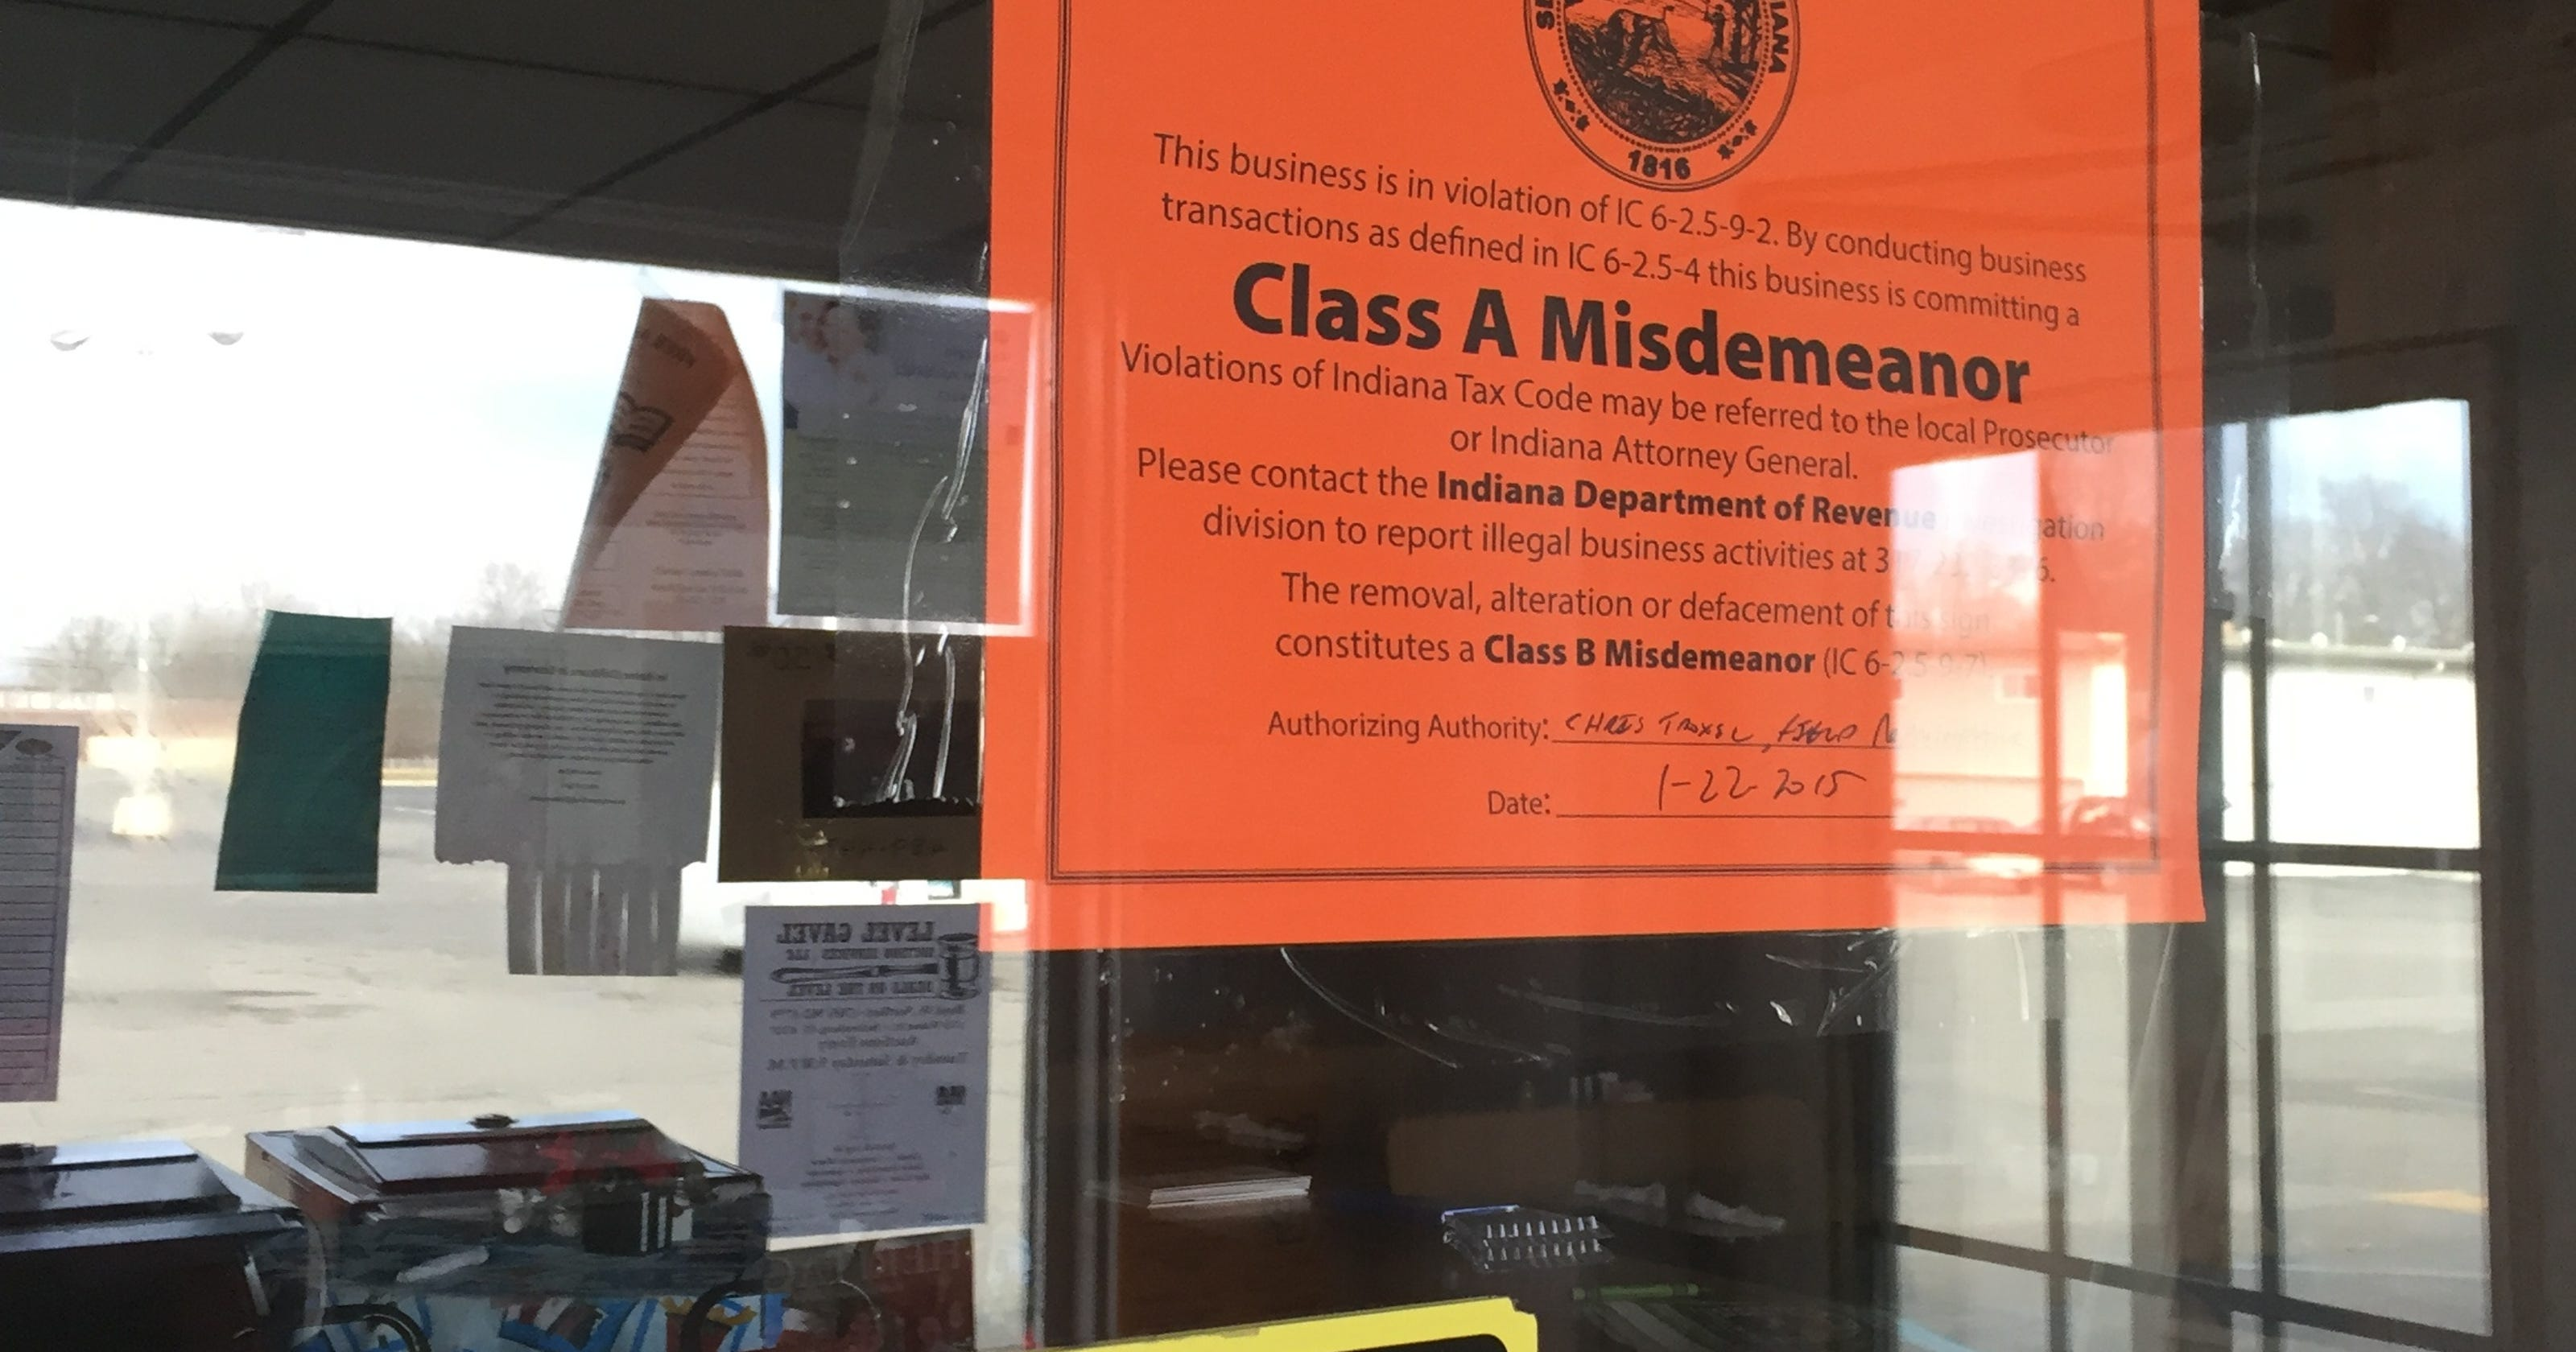 Hagerstown Diner Closed For Not Paying Taxes